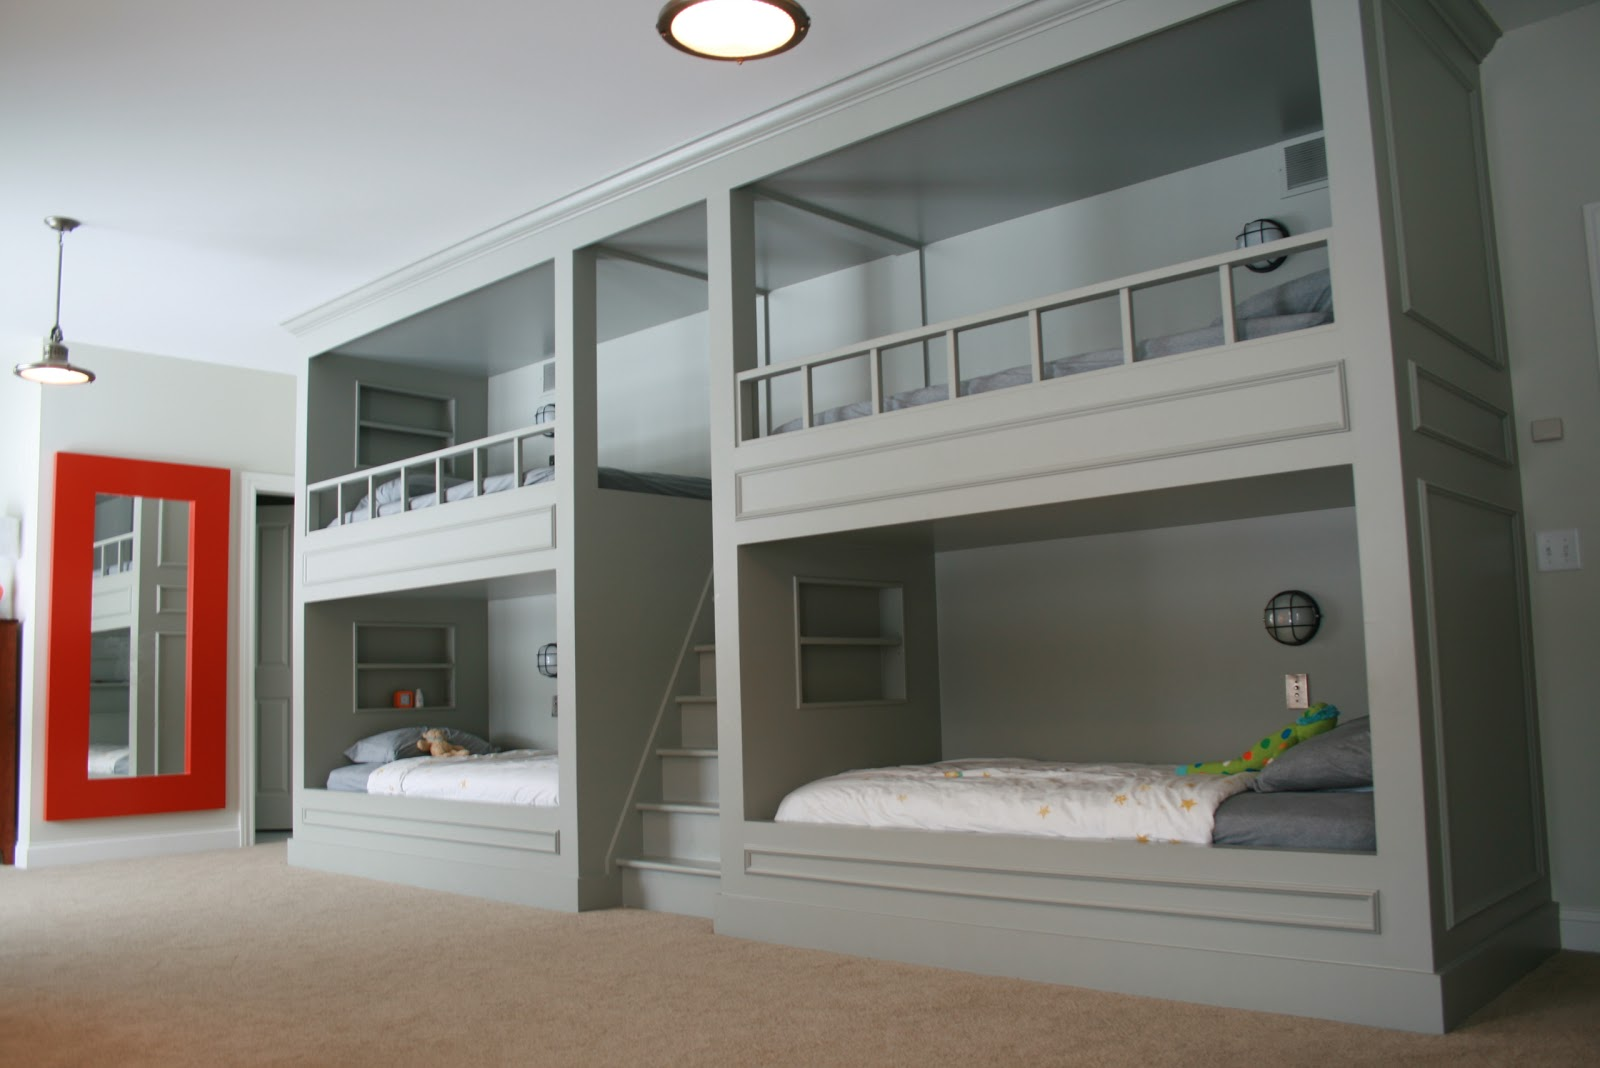 Guest room ideas for small spaces living room interior Bunk room designs